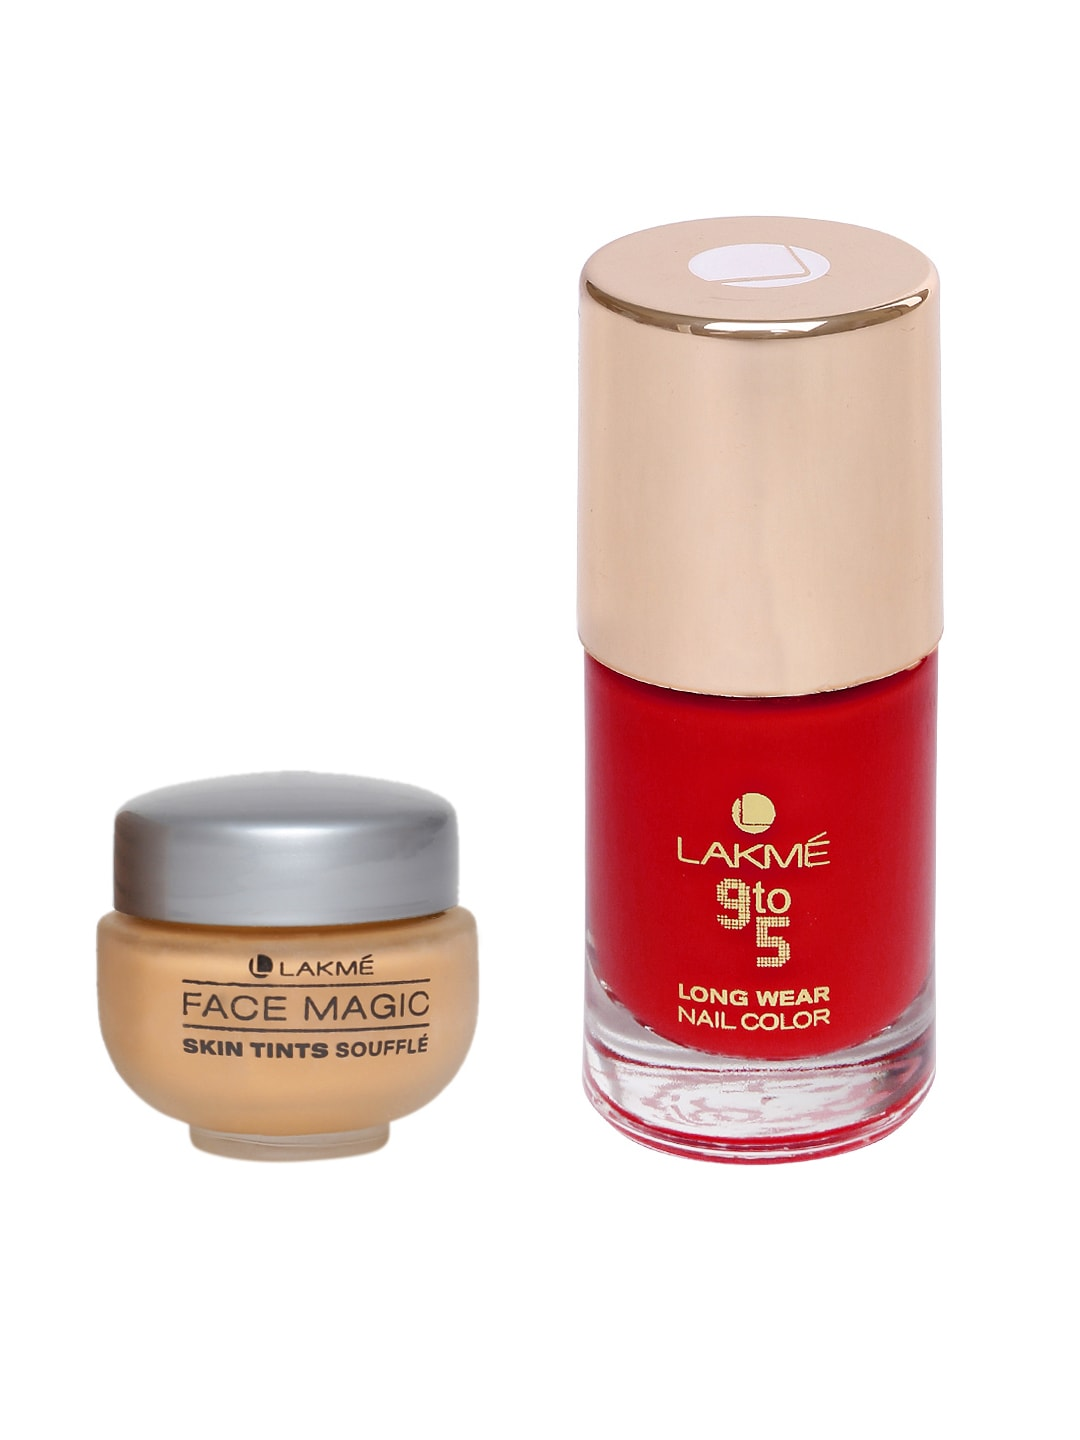 Lakme Nail Polish Compact Blusher Kajal - Buy Lakme Nail Polish Compact Blusher Kajal online in India